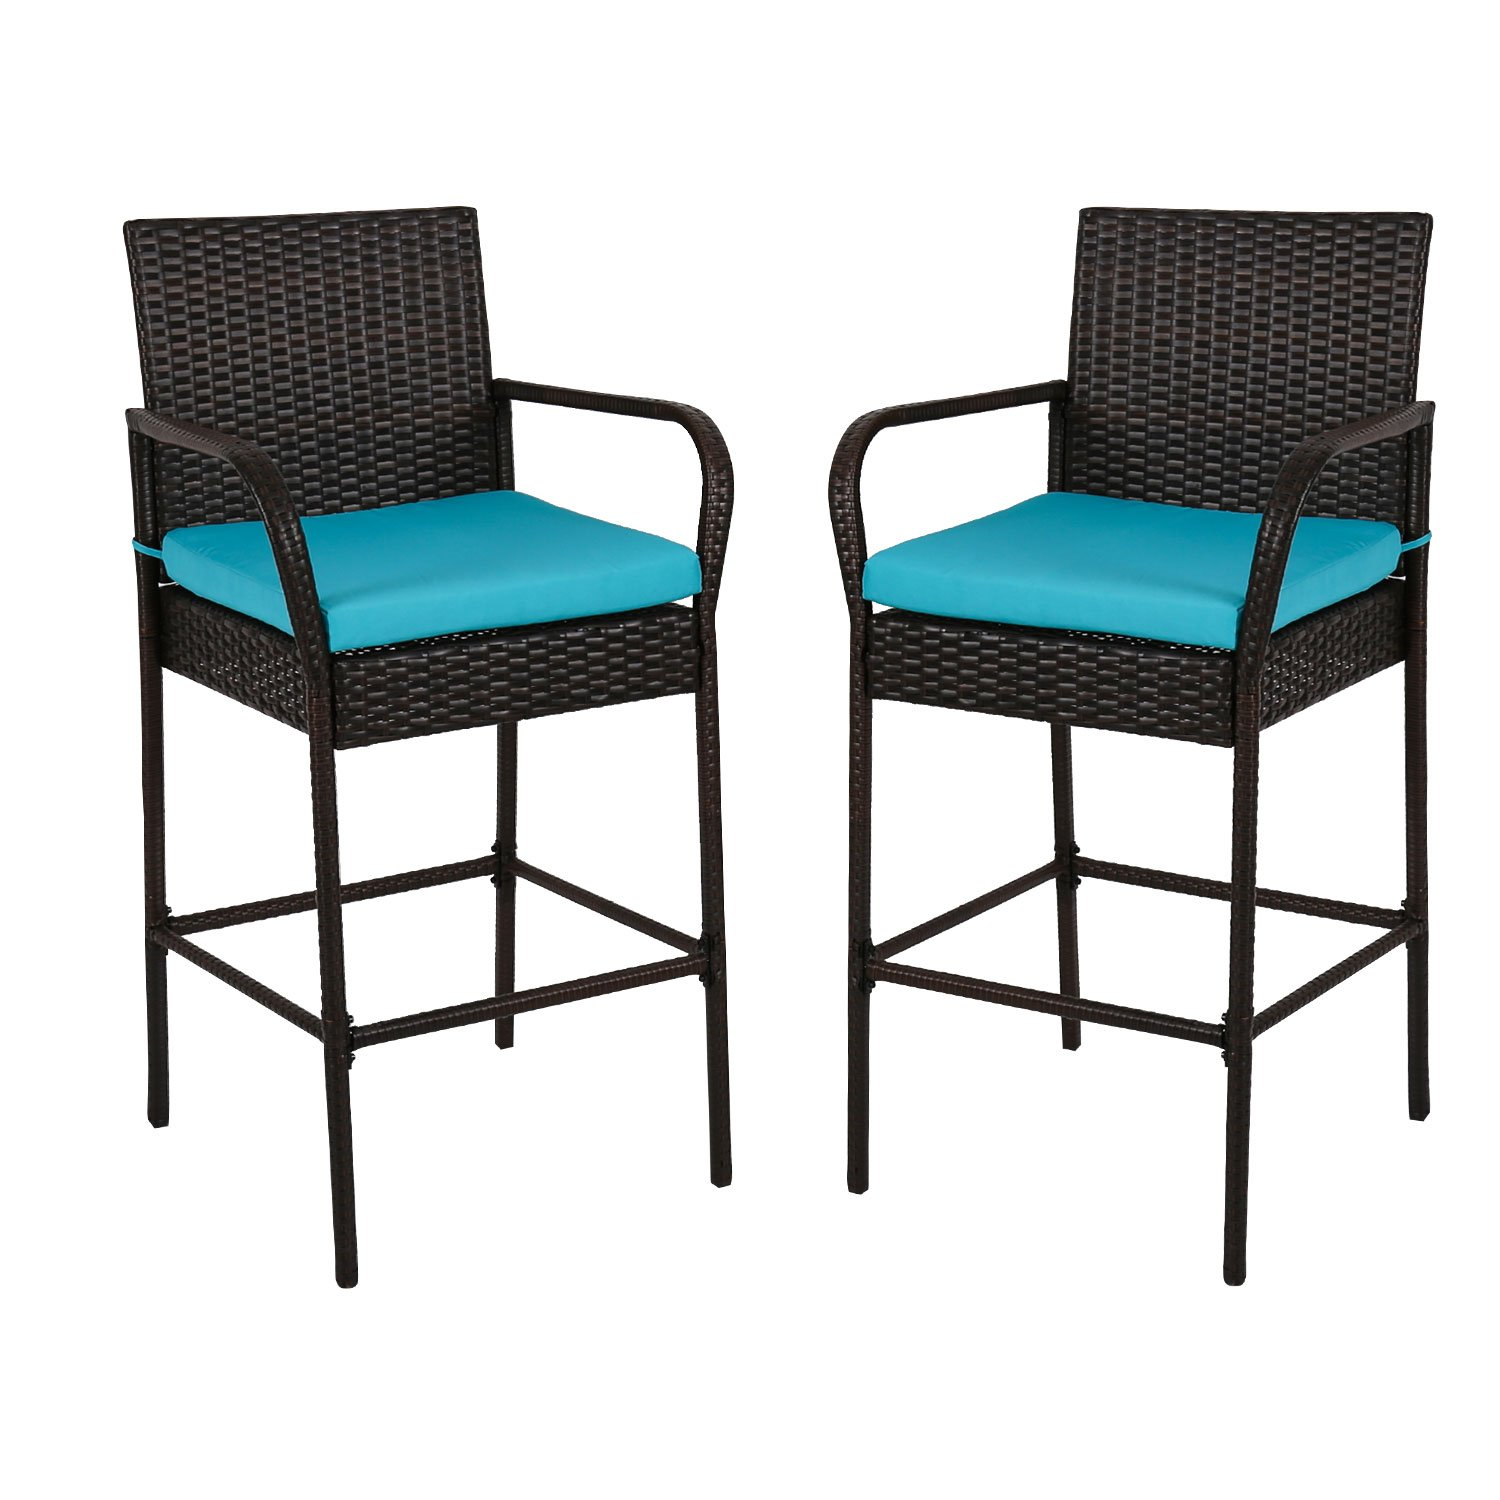 Peach Tree 2PCs Outdoor Wicker Bar Height Chair Set, All Weather Patio Furniture Rocker Rattan Dining Chiars Barstool High Chairs with Cushions, Blue